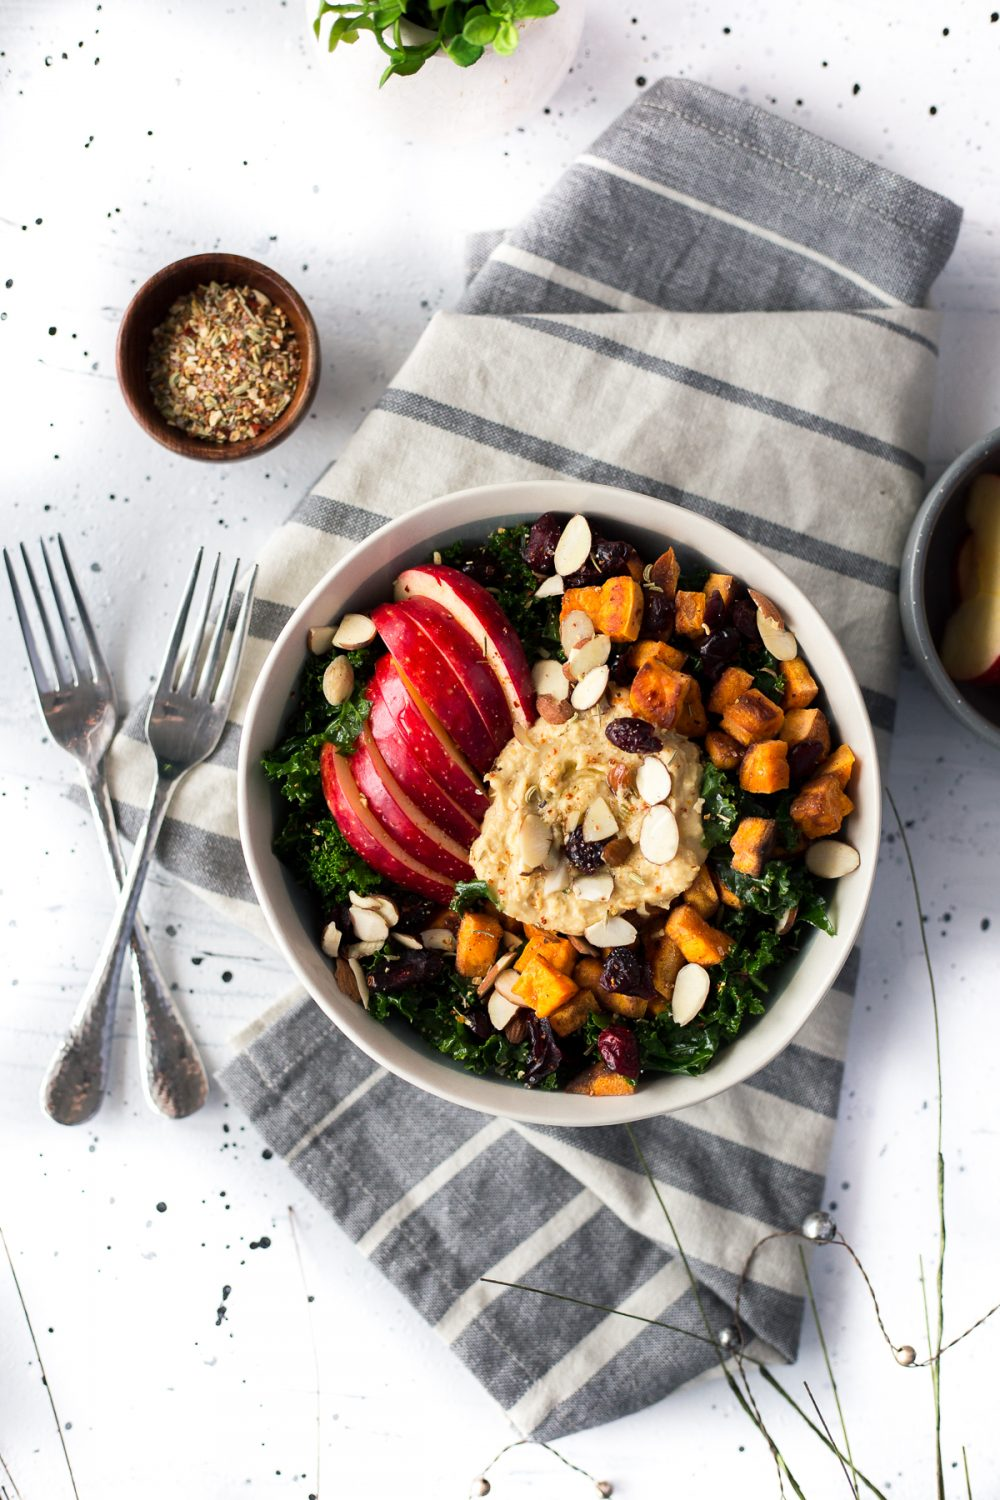 Crispy Crunchy Winter Hummus Bowl with Kale, Sweet Potato, and Apple